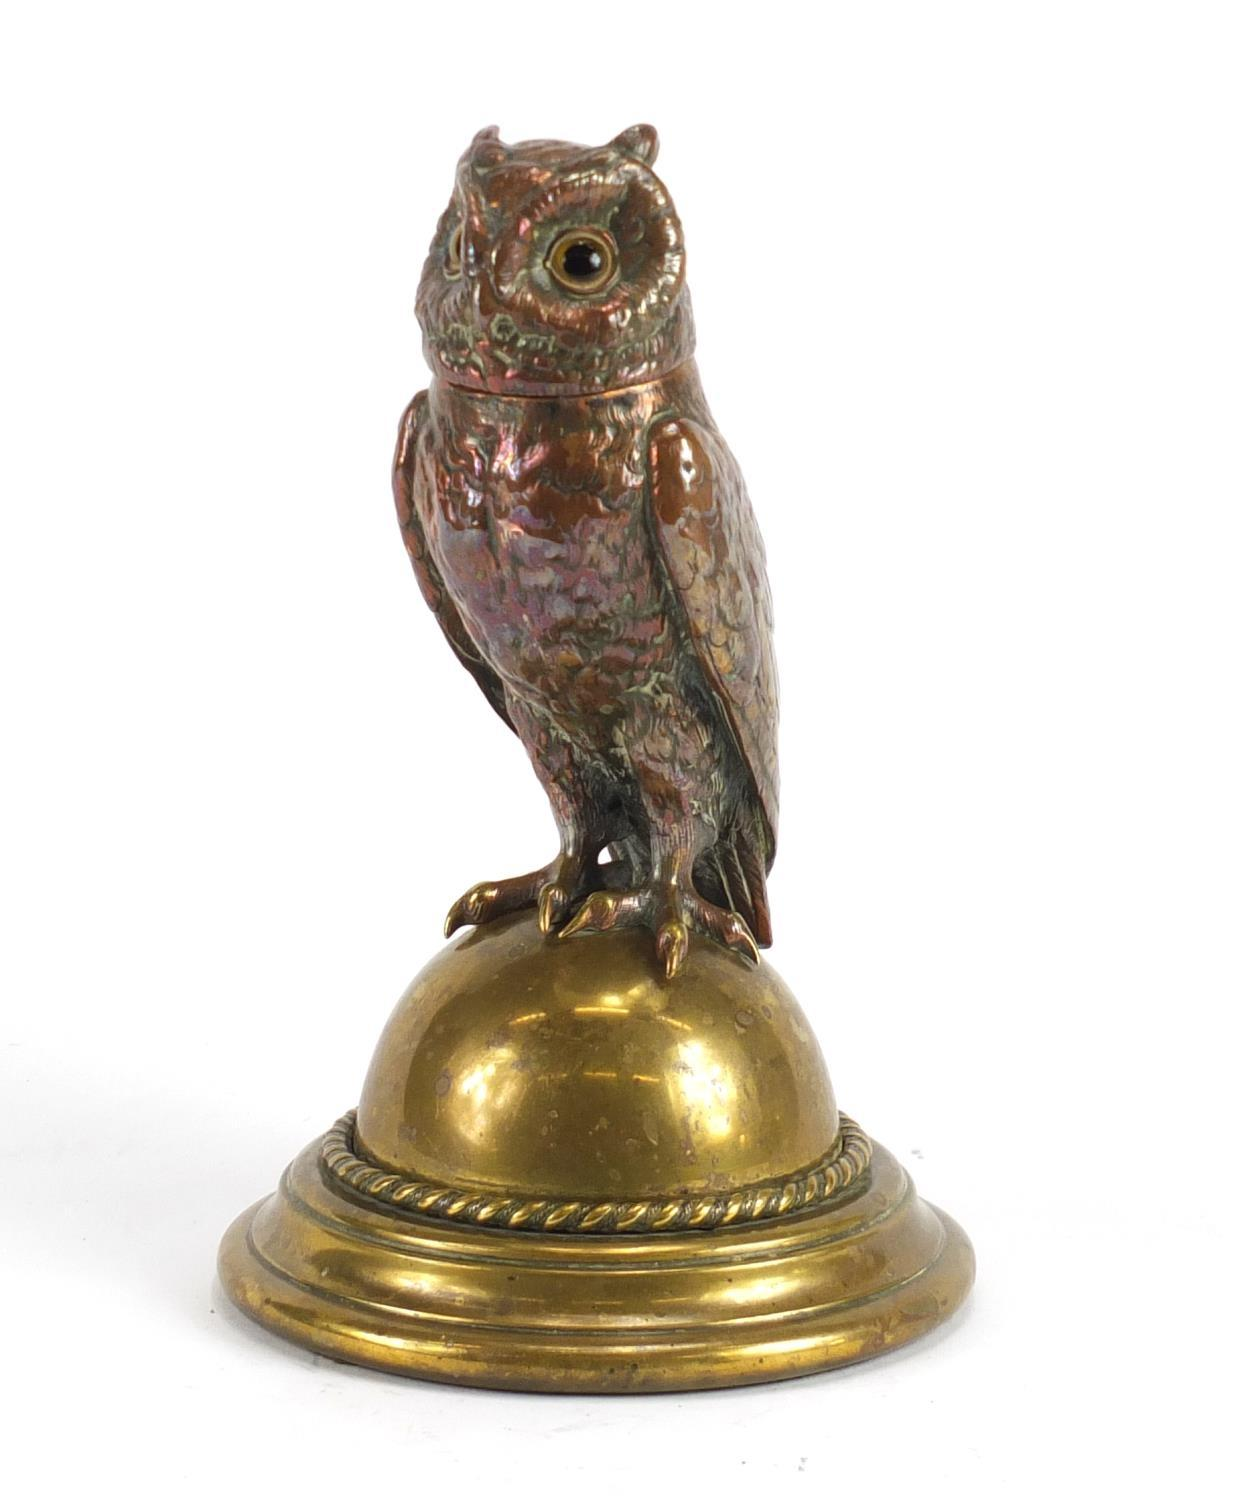 Lot 20 - Novelty Victorian copper and brass owl design desk inkwell, 23cm high :For Further Condition Reports